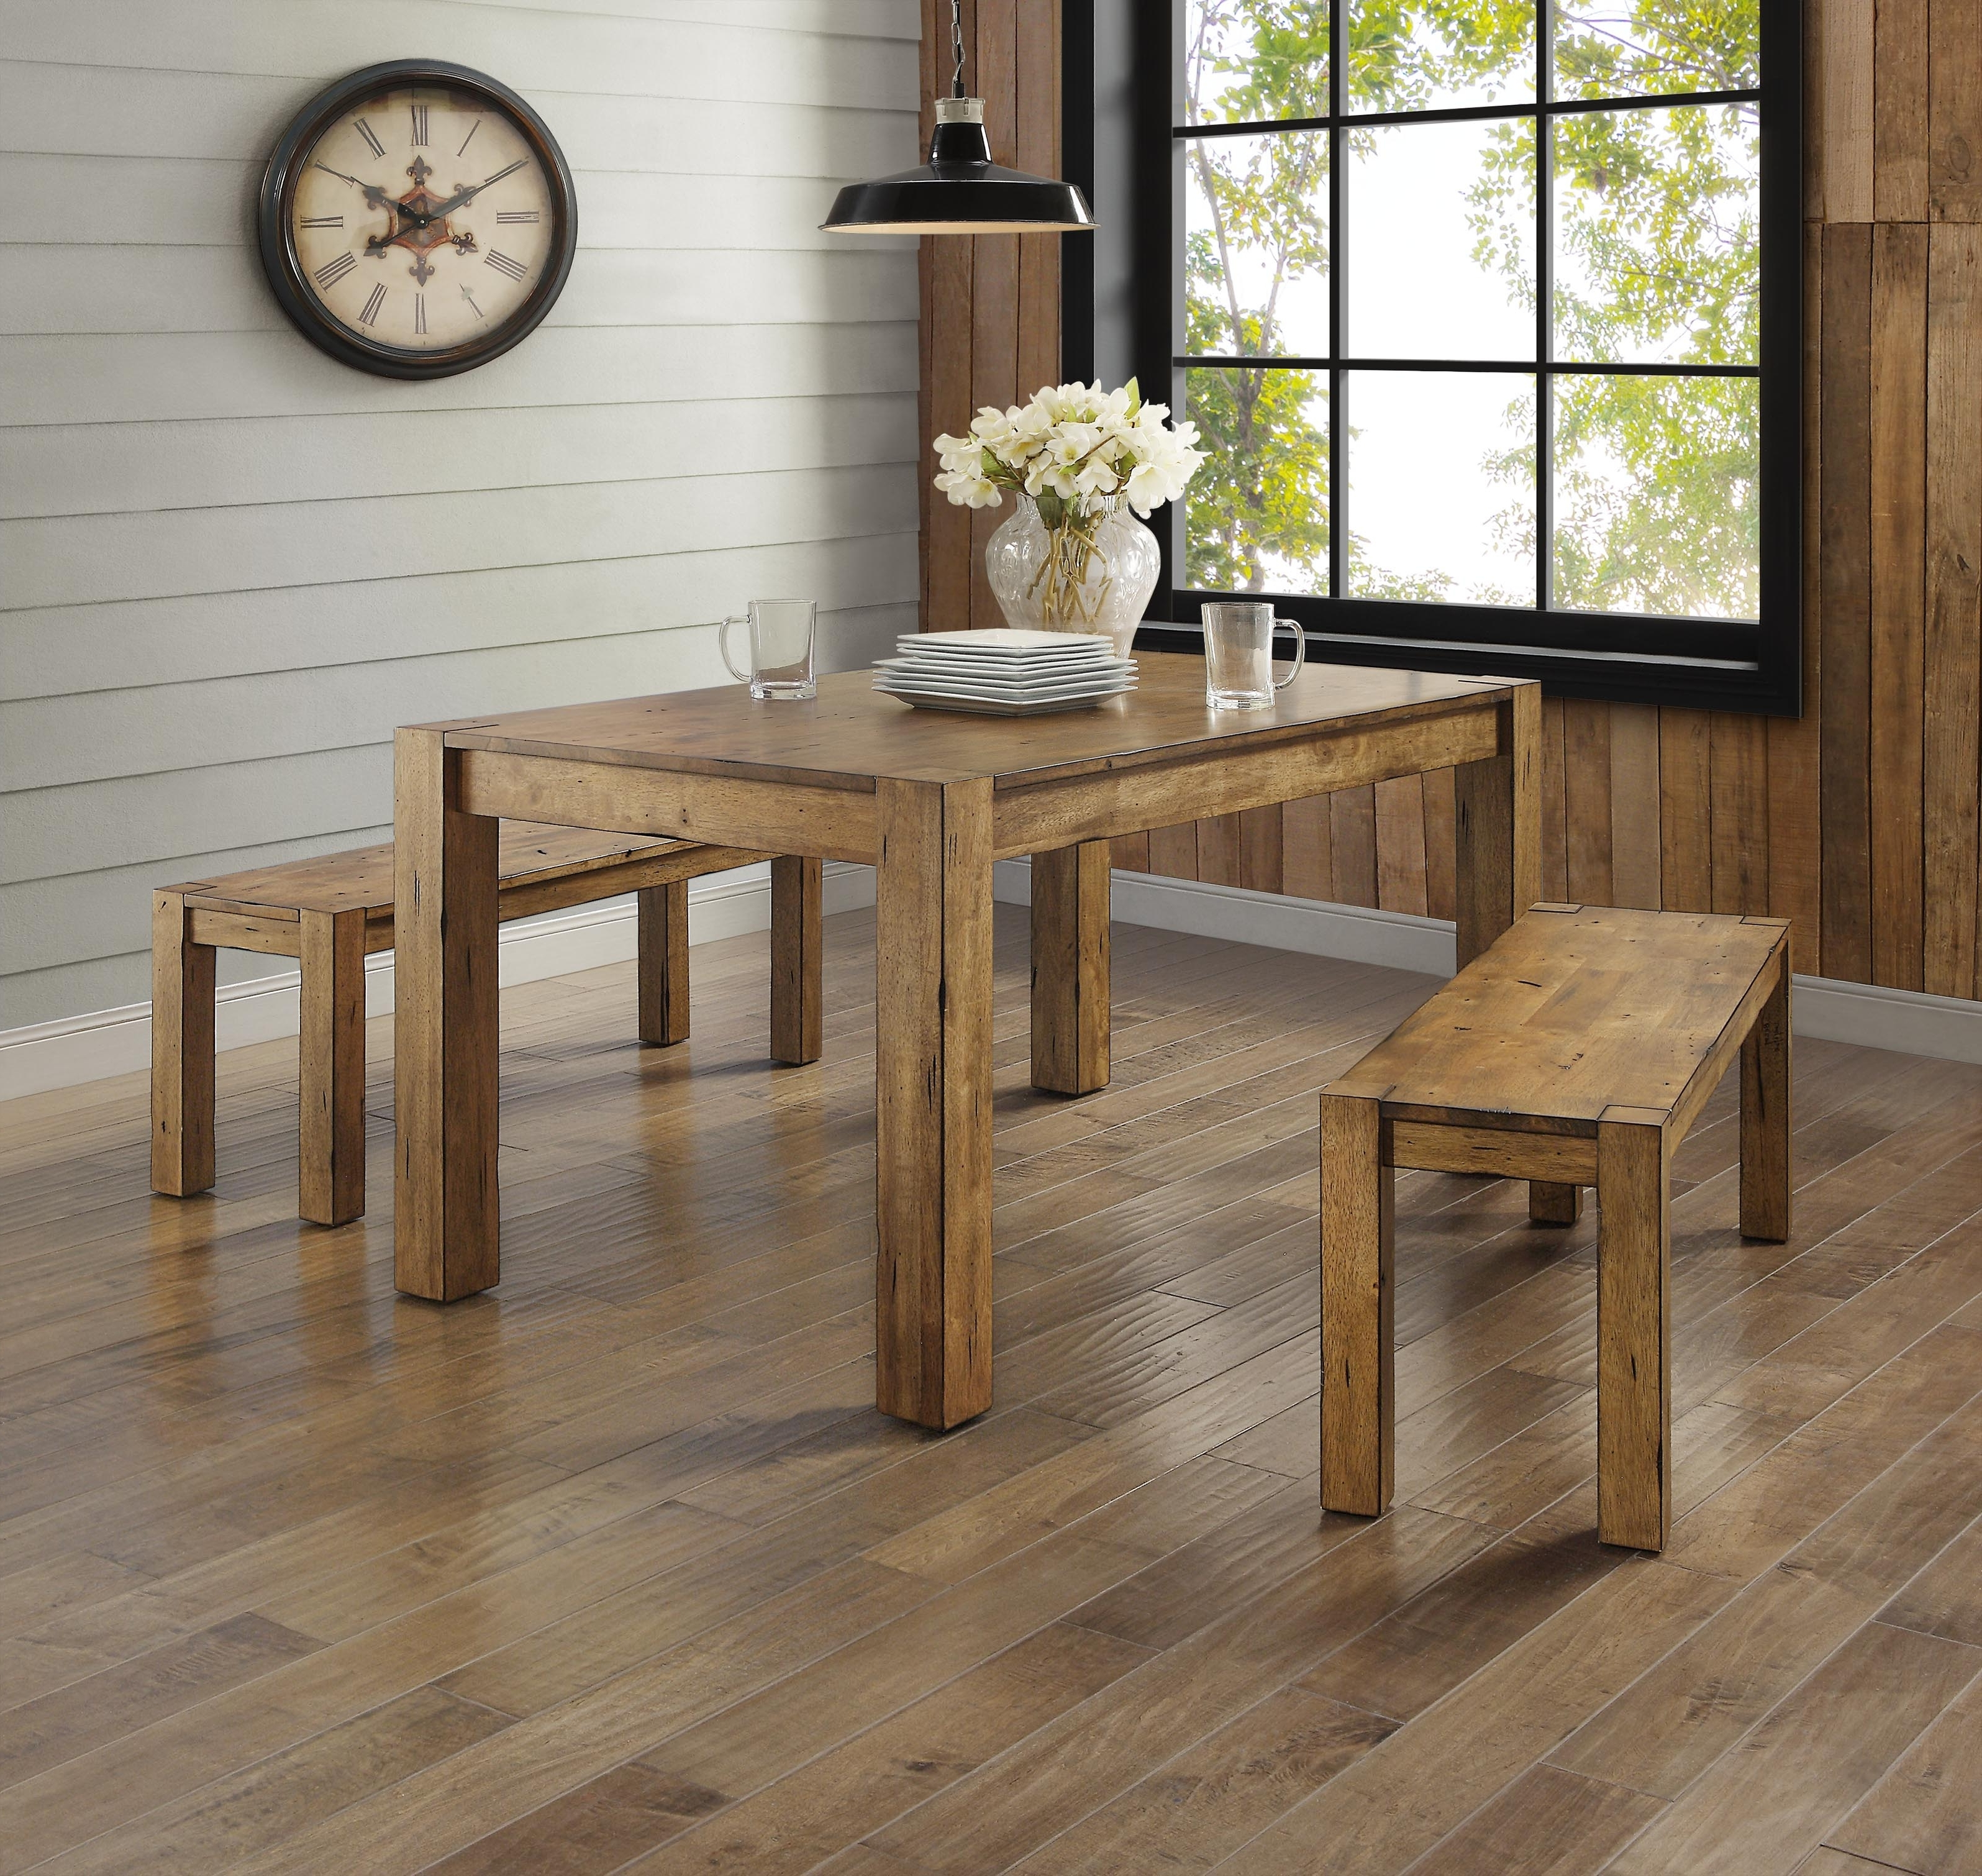 Trendy Better Homes & Gardens Bryant Dining Table, Multiple Finishes Inside Rustic Dining Tables (View 14 of 25)